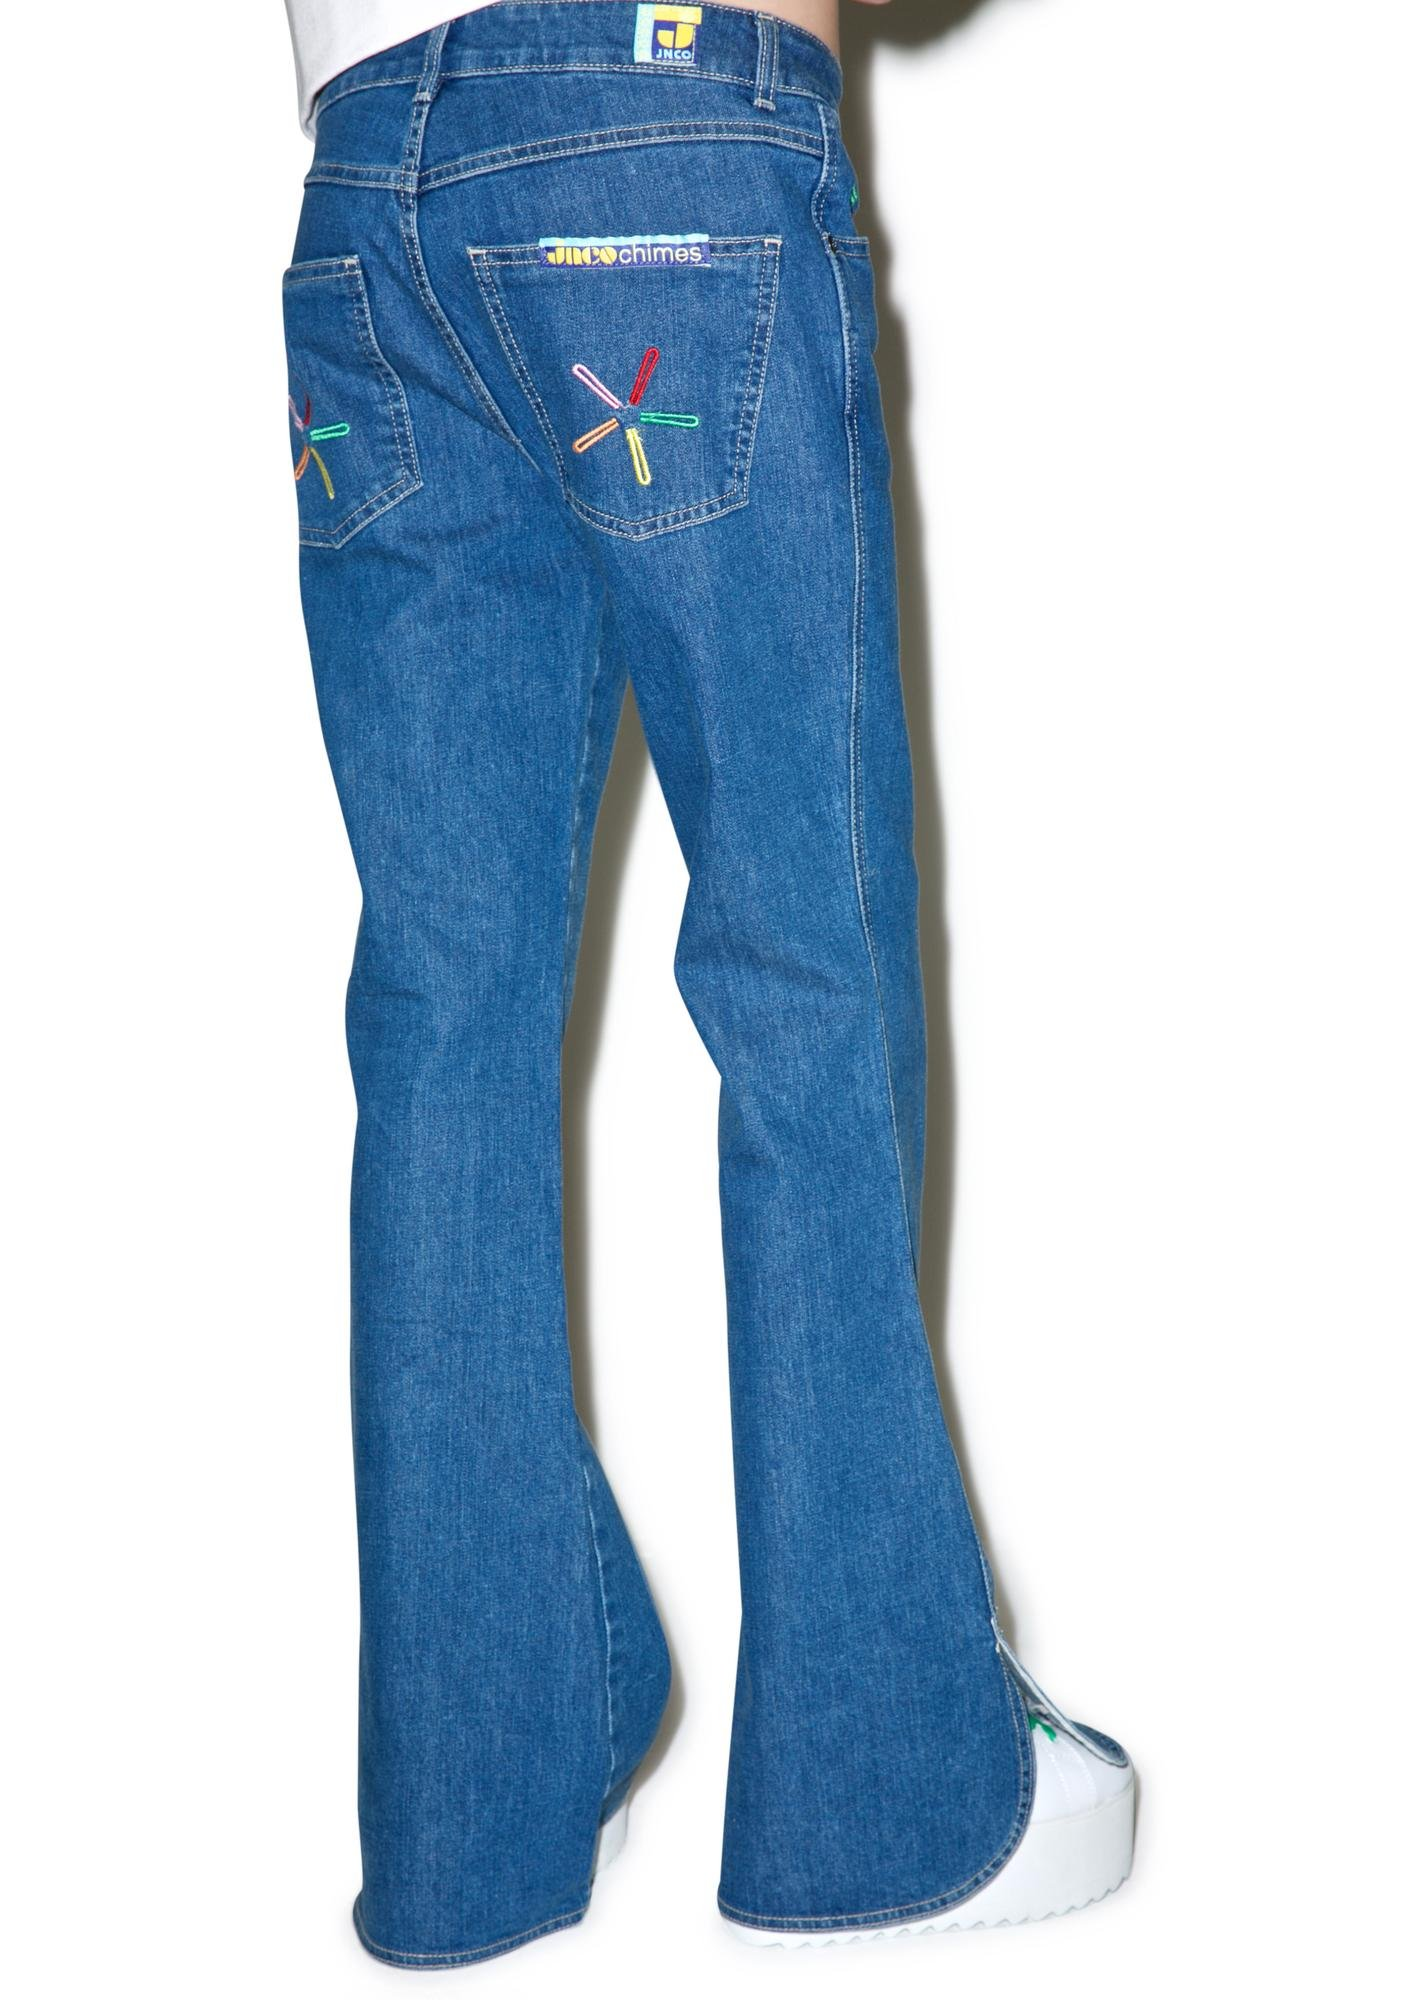 JNCO Classix Jeans